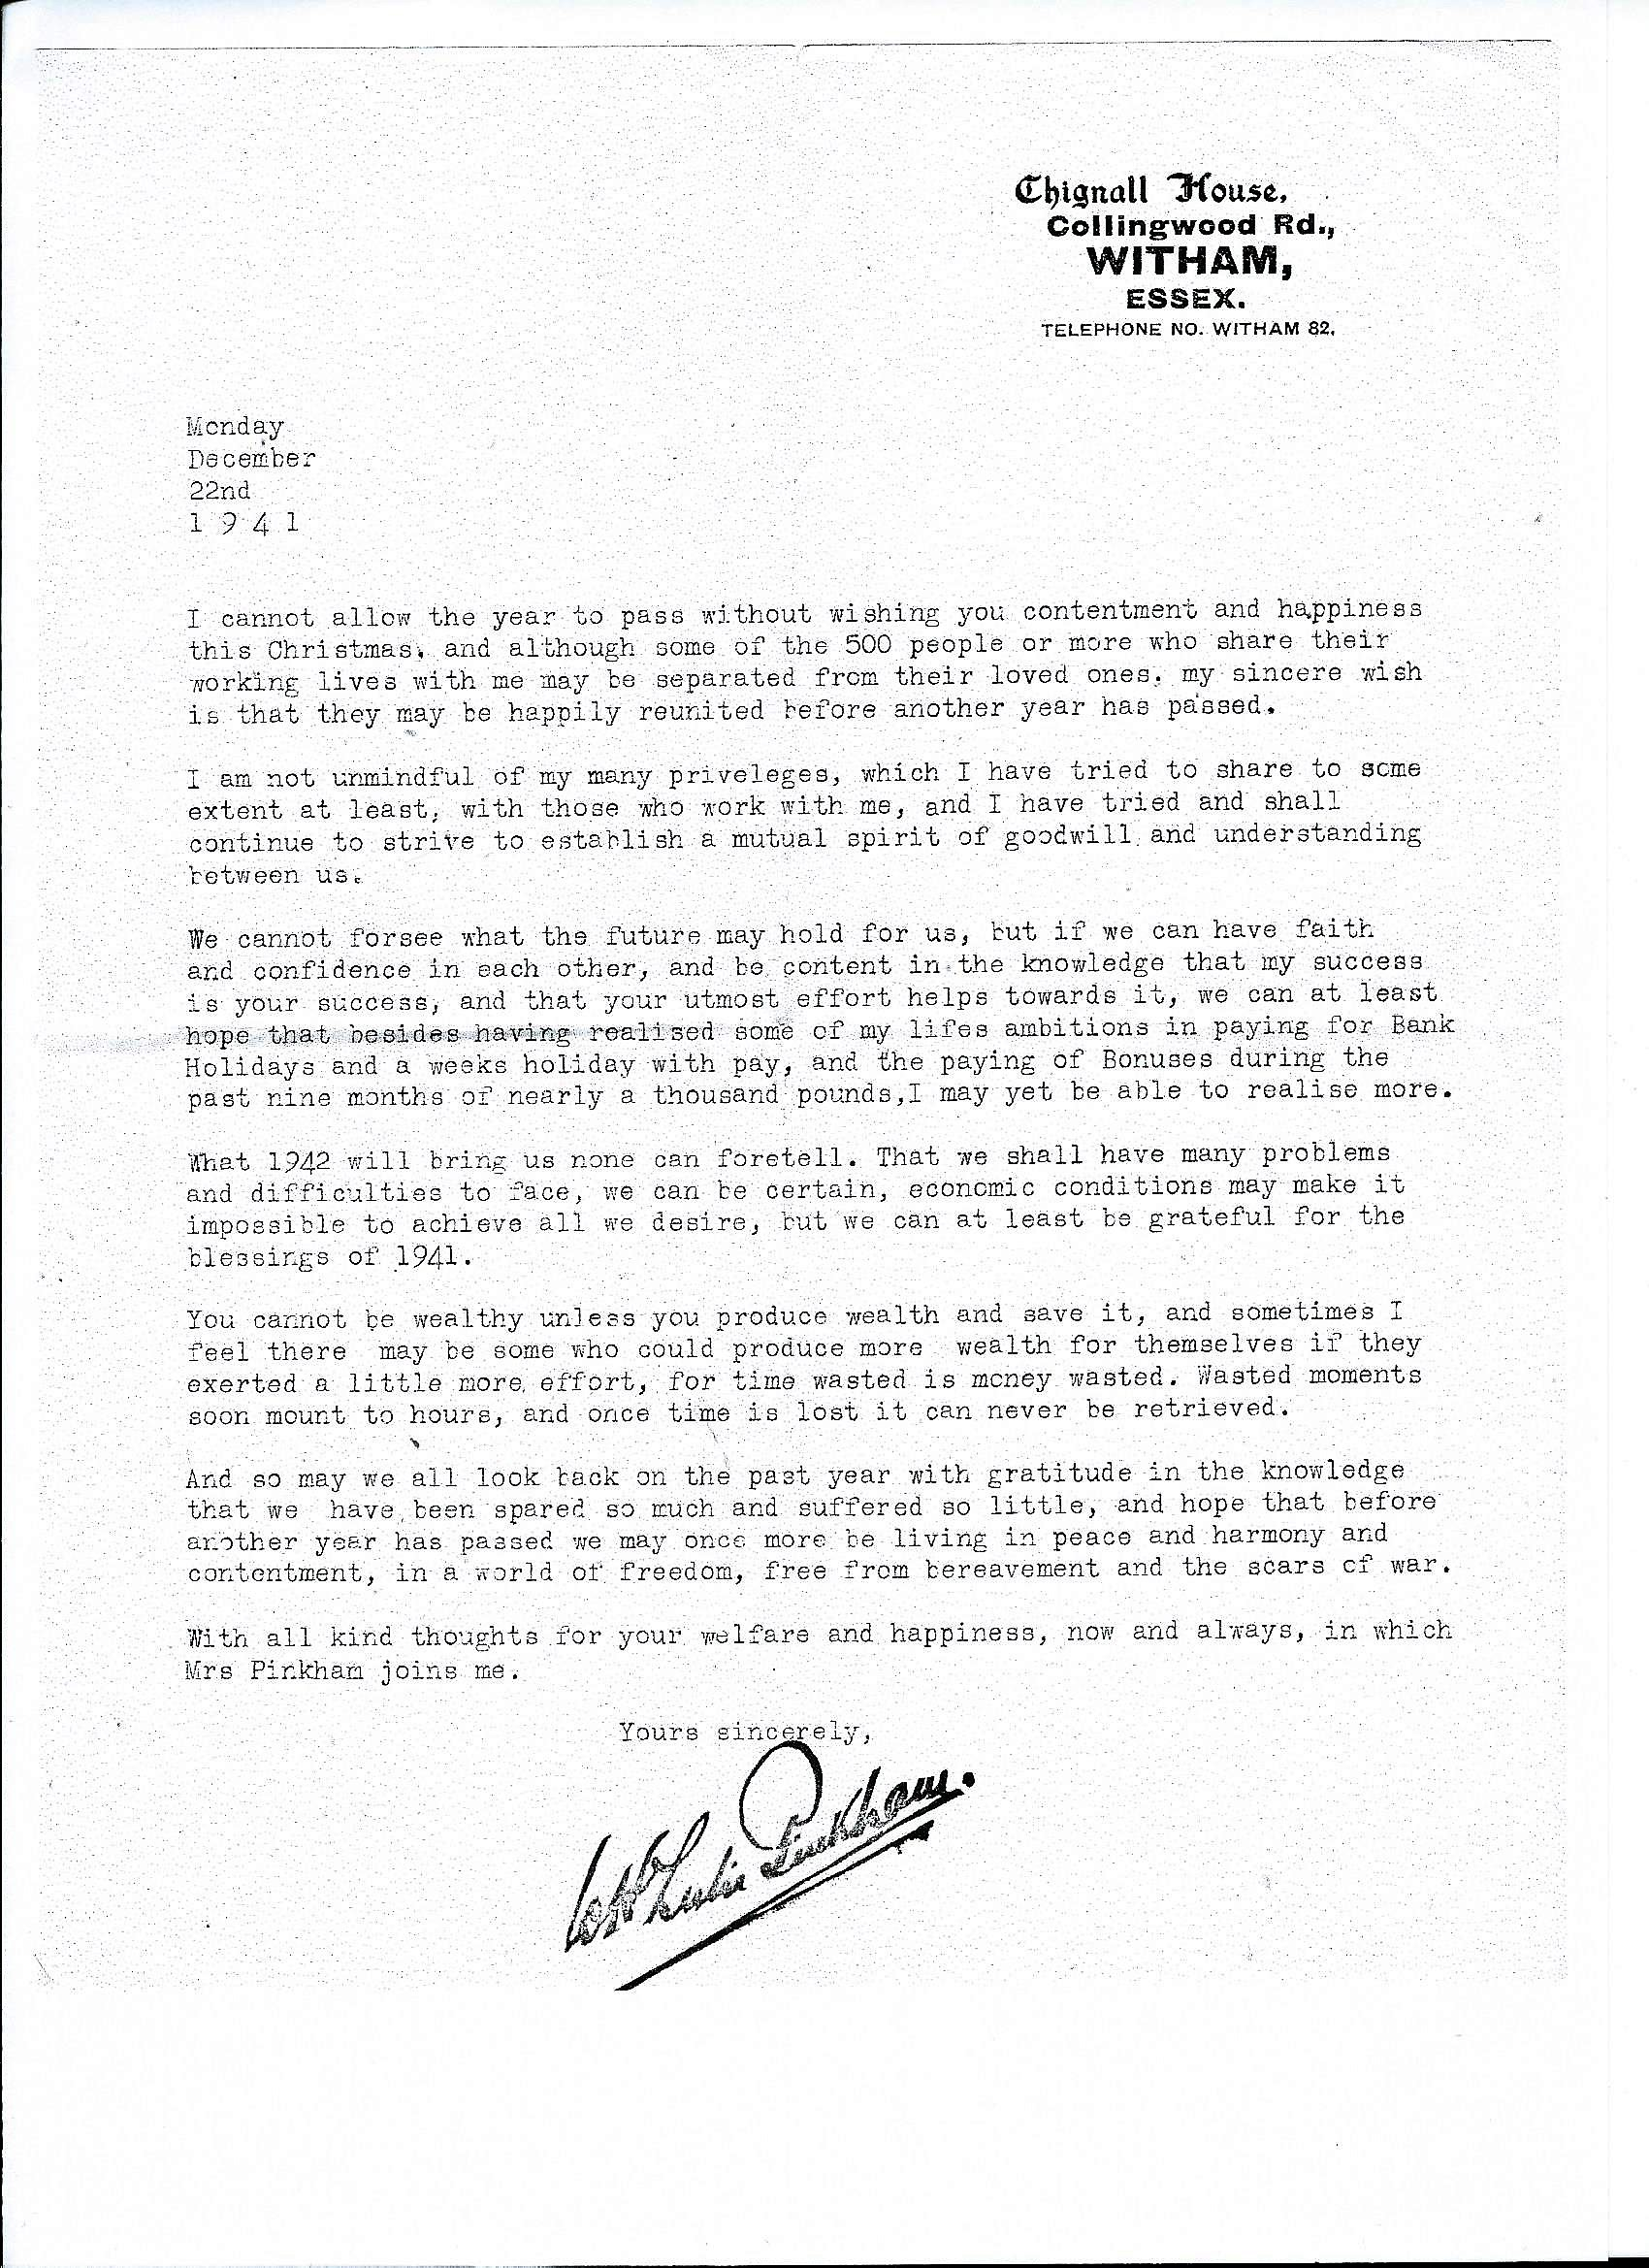 WHLP letter to staff December 1941